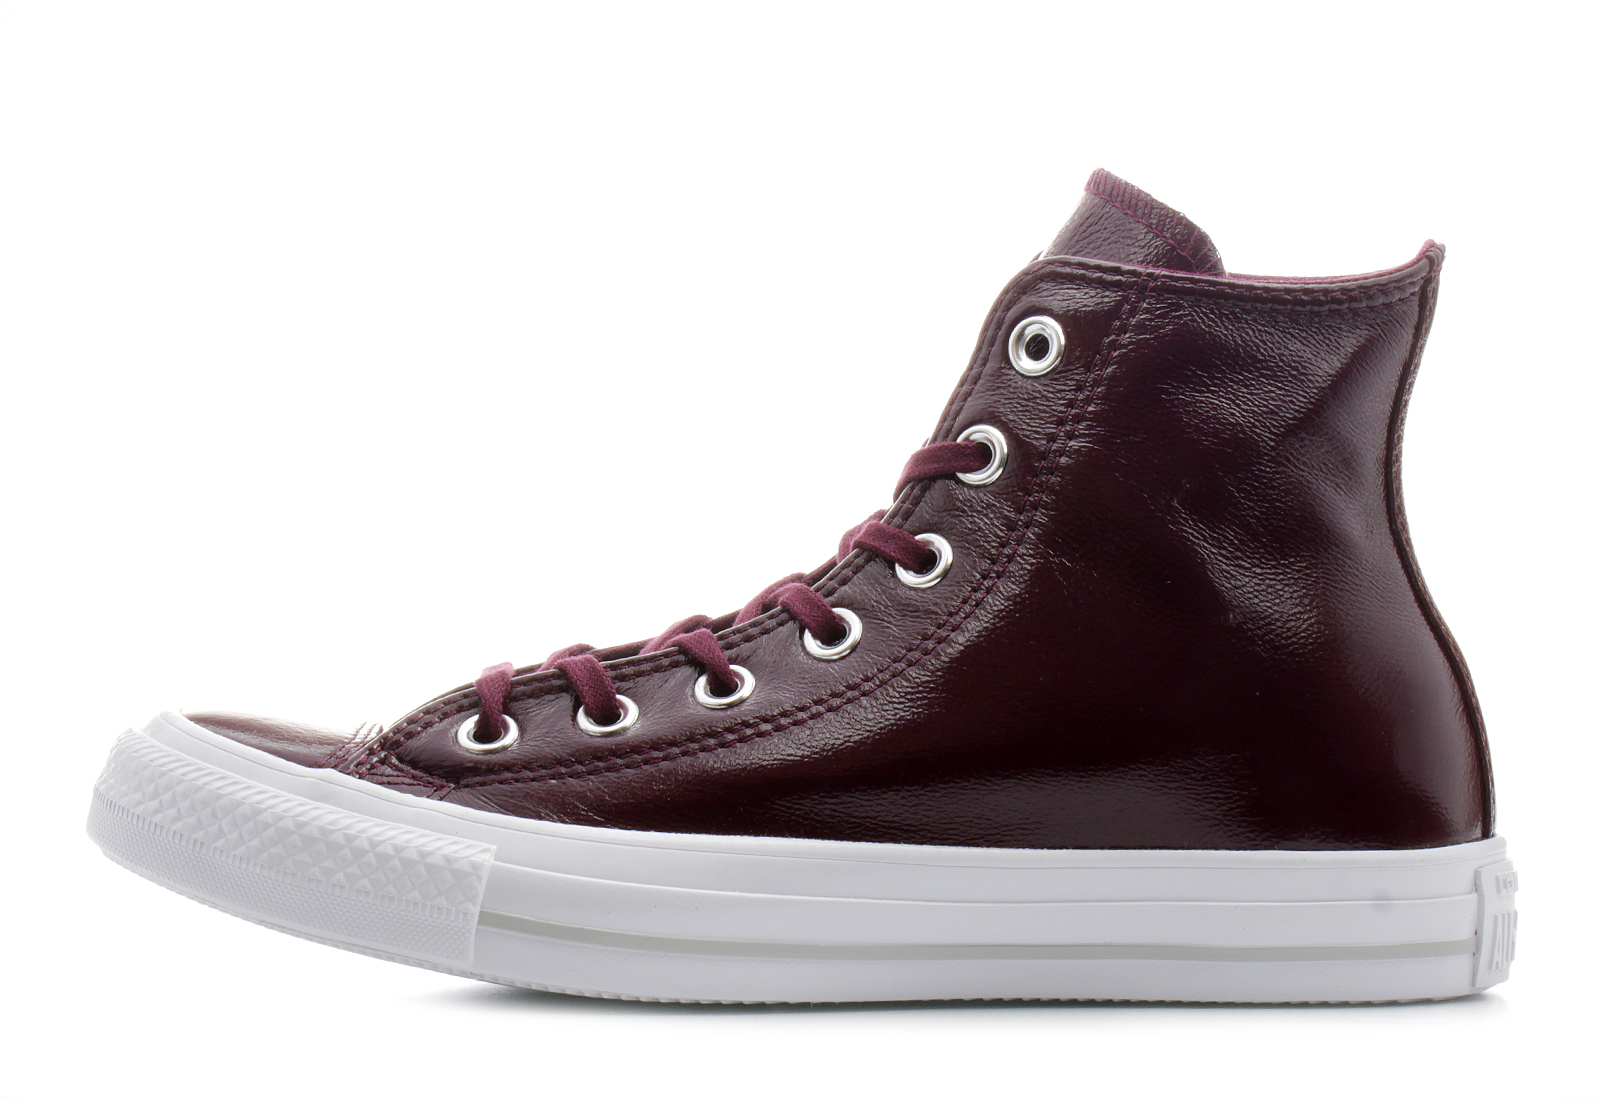 Free shipping BOTH ways on converse hi top patent leather, from our vast selection of styles. Fast delivery, and 24/7/ real-person service with a smile. Click or call